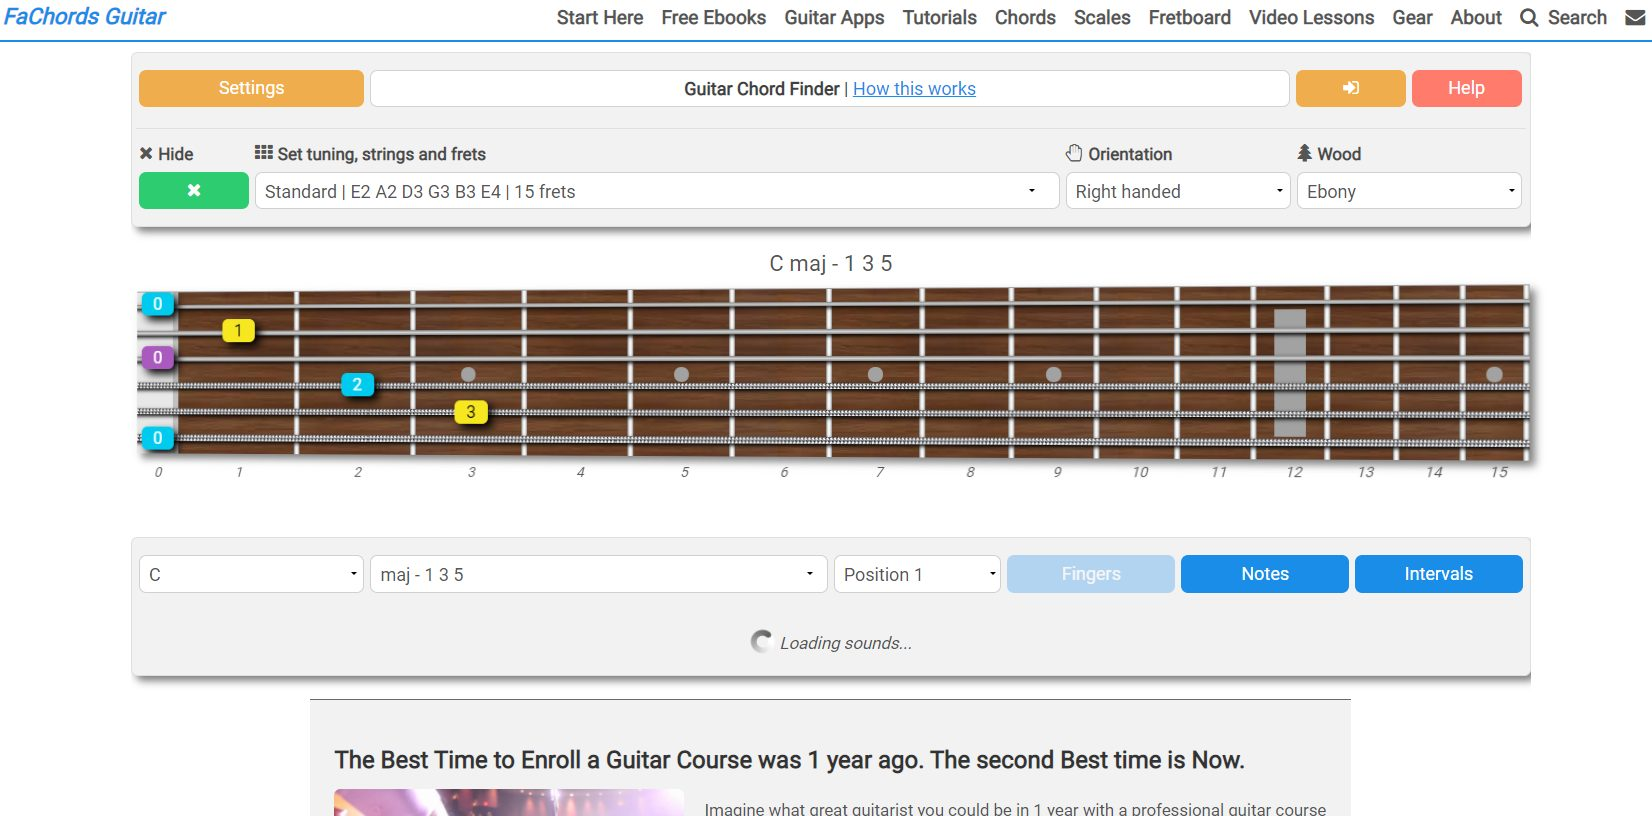 FAChords Interactive Guitar Chord Learning Software